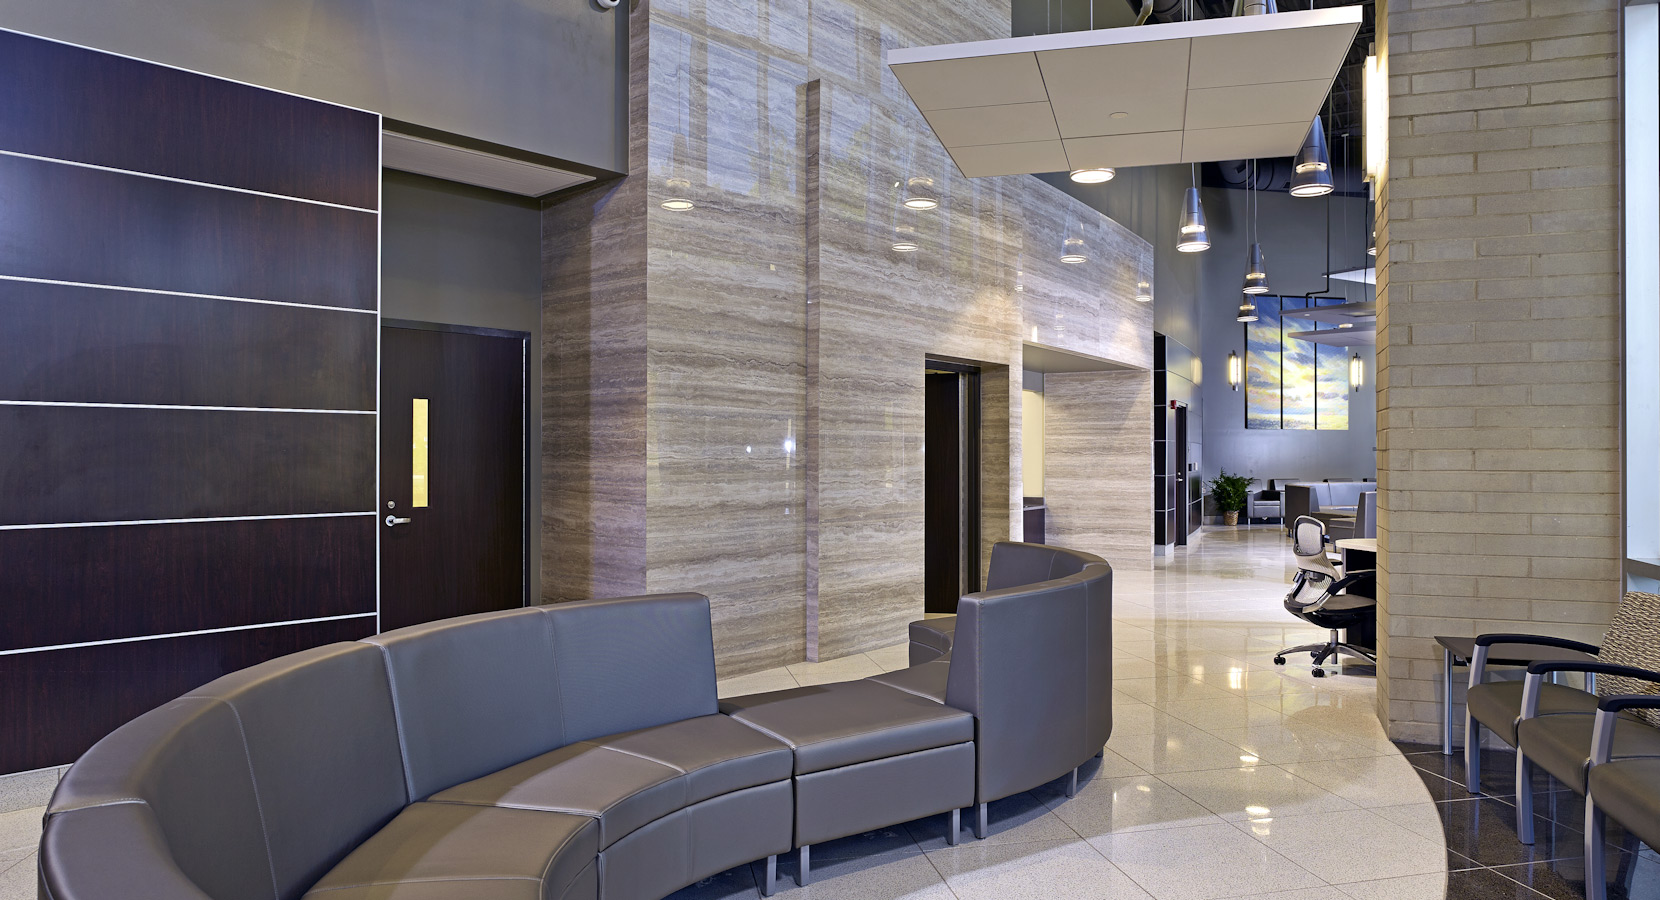 Birmingham commercial interior design by design innovations for Corporate interior design